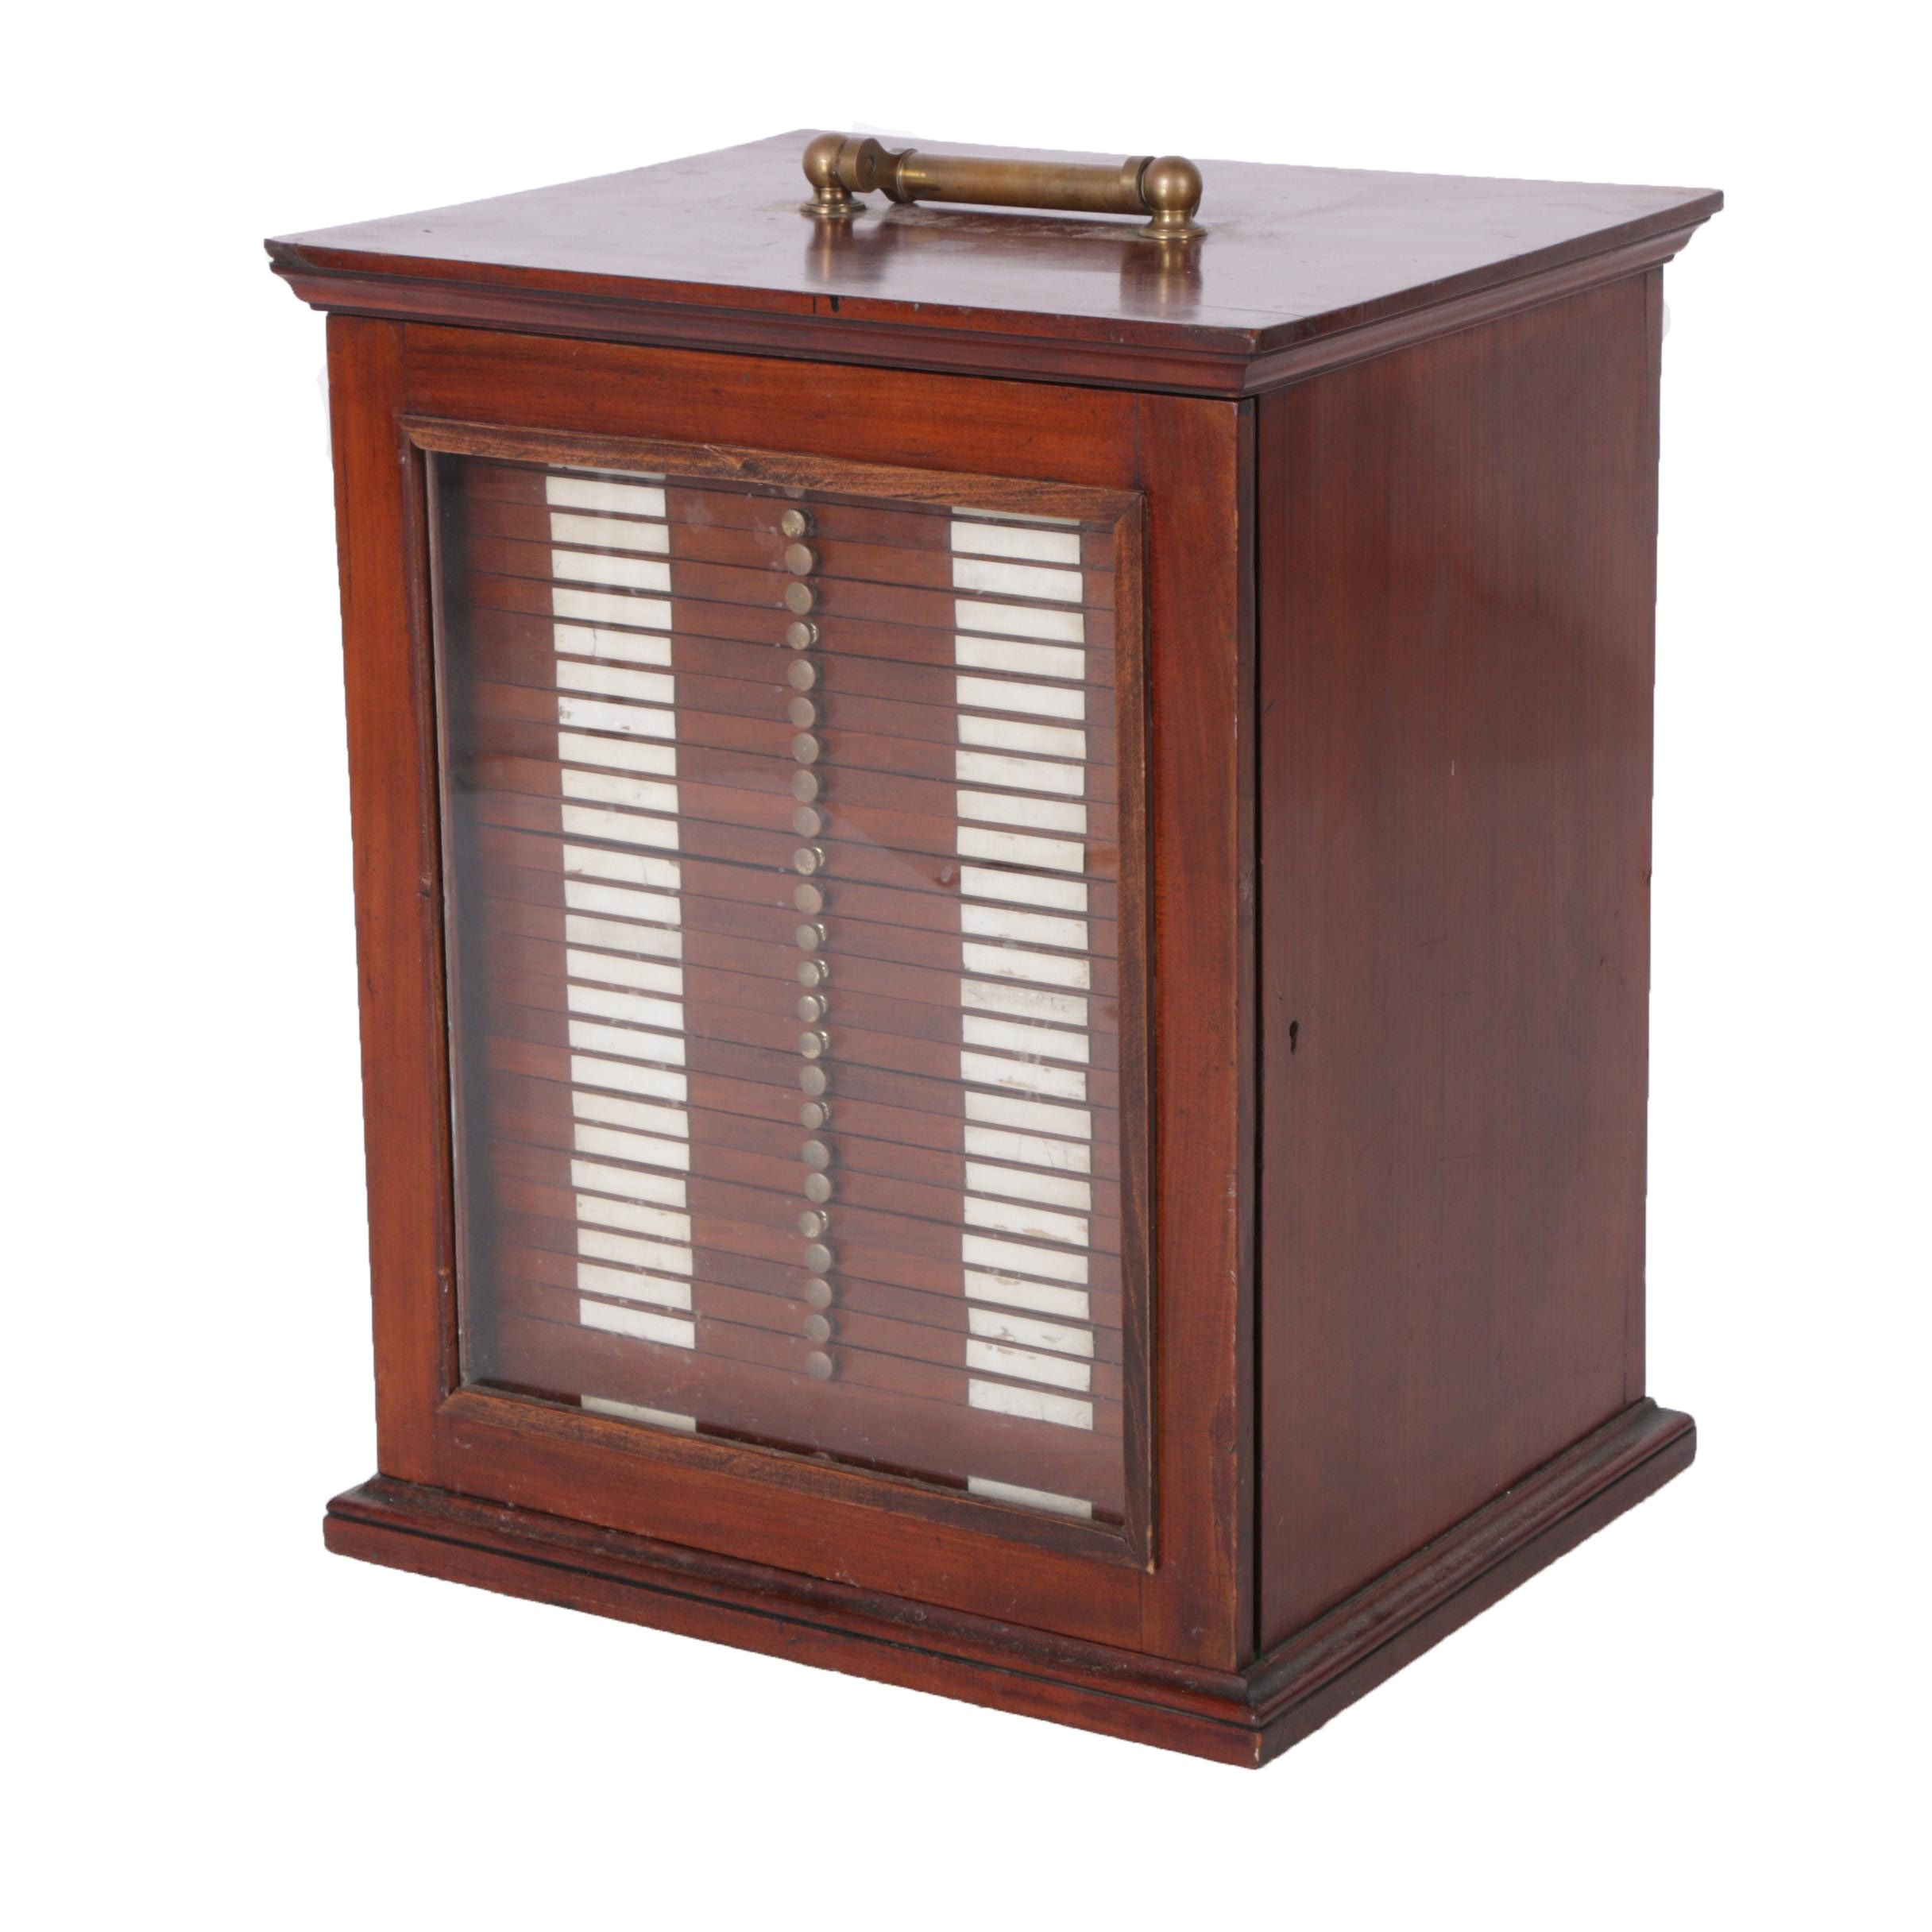 Antique Mahogany Microscope Slide Cabinet by R. & J. Beck